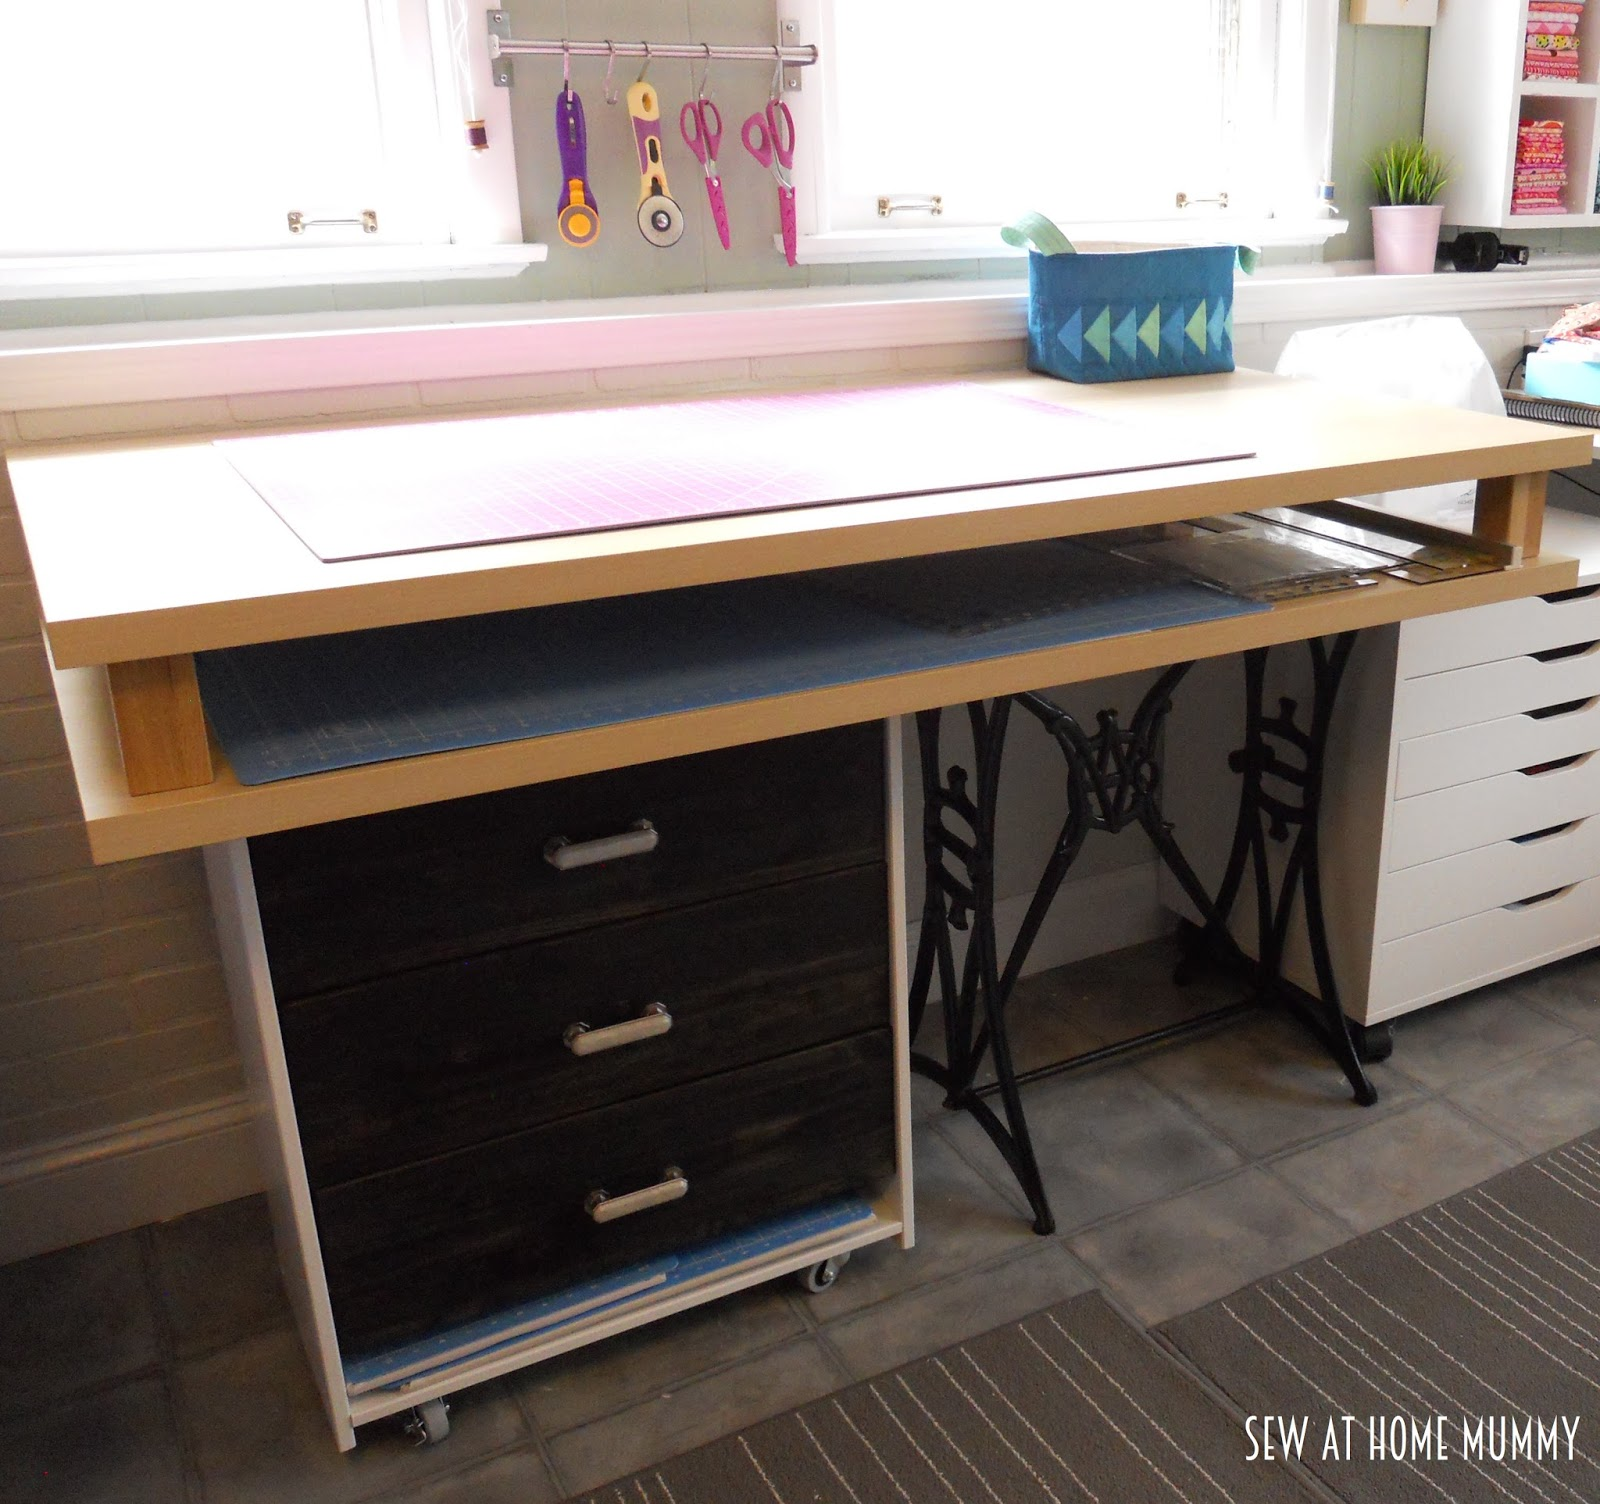 Sew at Home Mummy: DIY Fabric Cutting and Craft Table